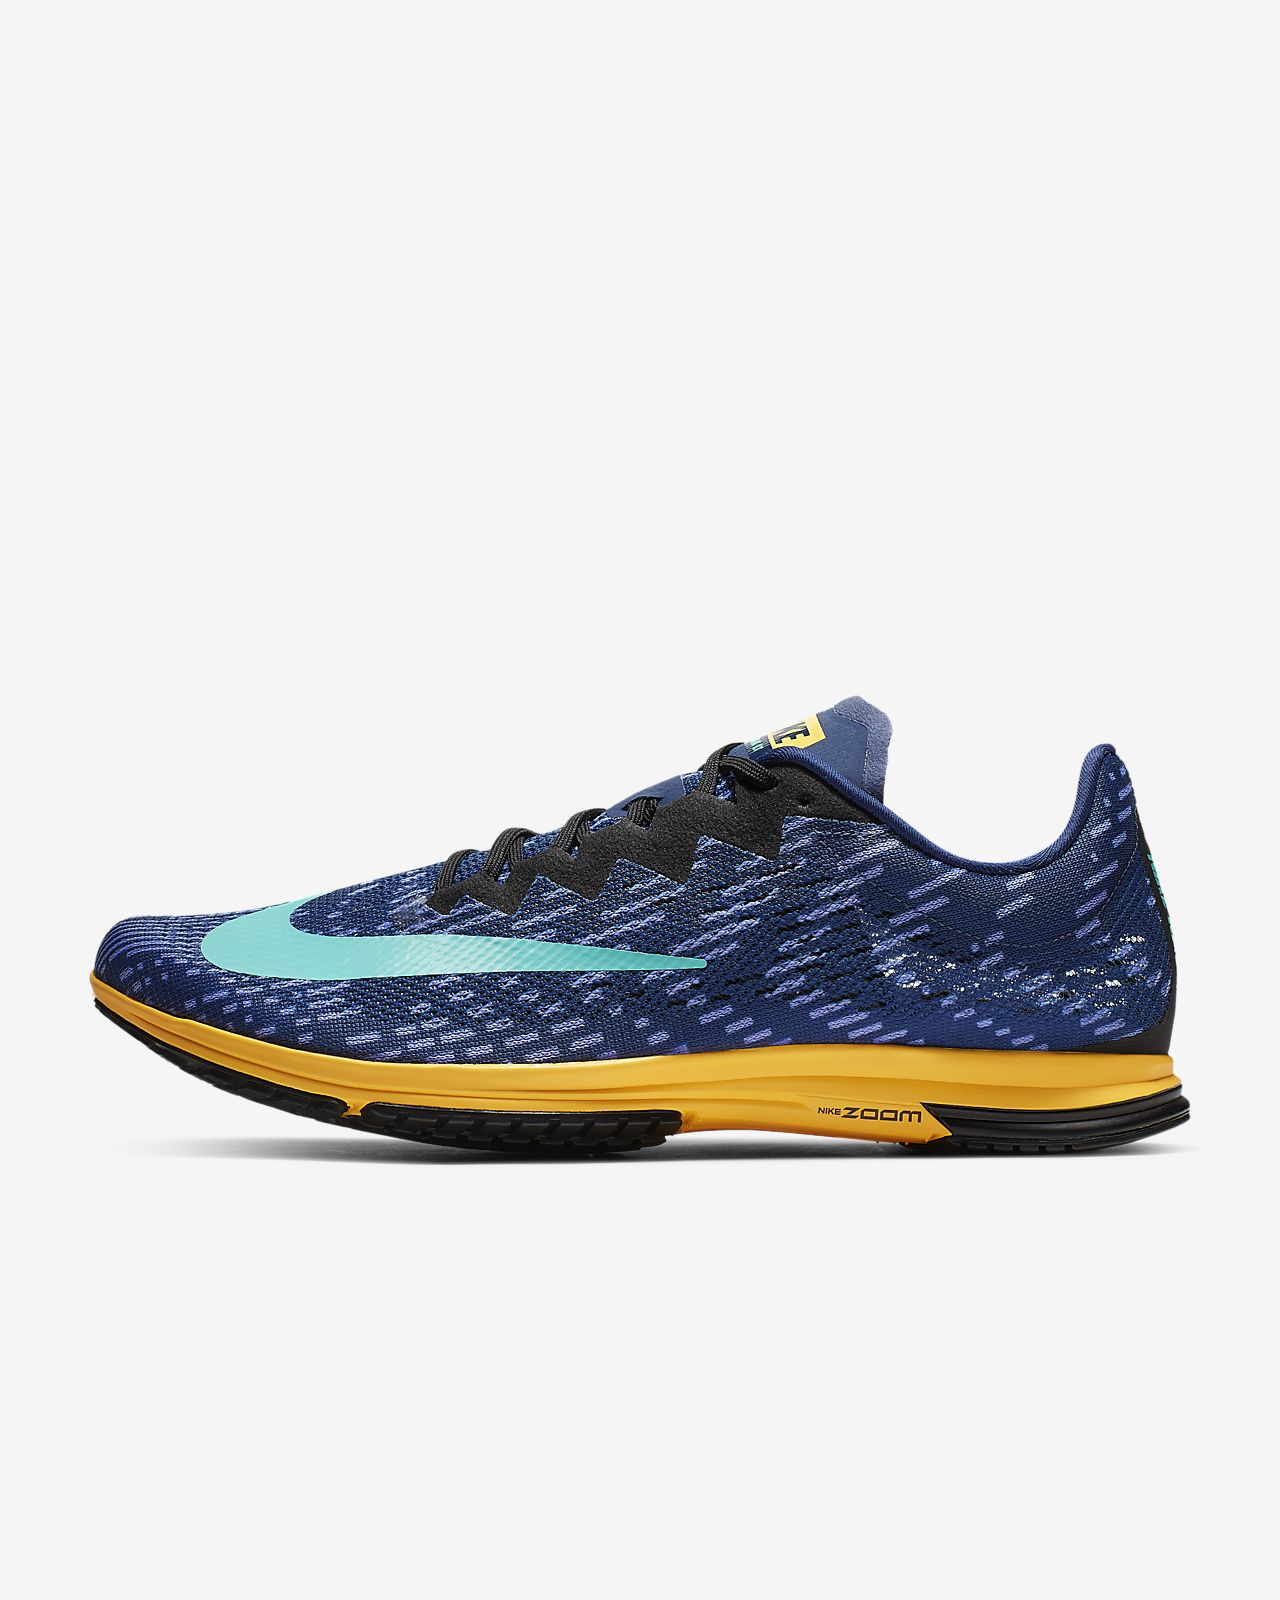 detailed pictures 9204c 22cb1 ... Nike Air Zoom Streak LT 4 Racing Shoe